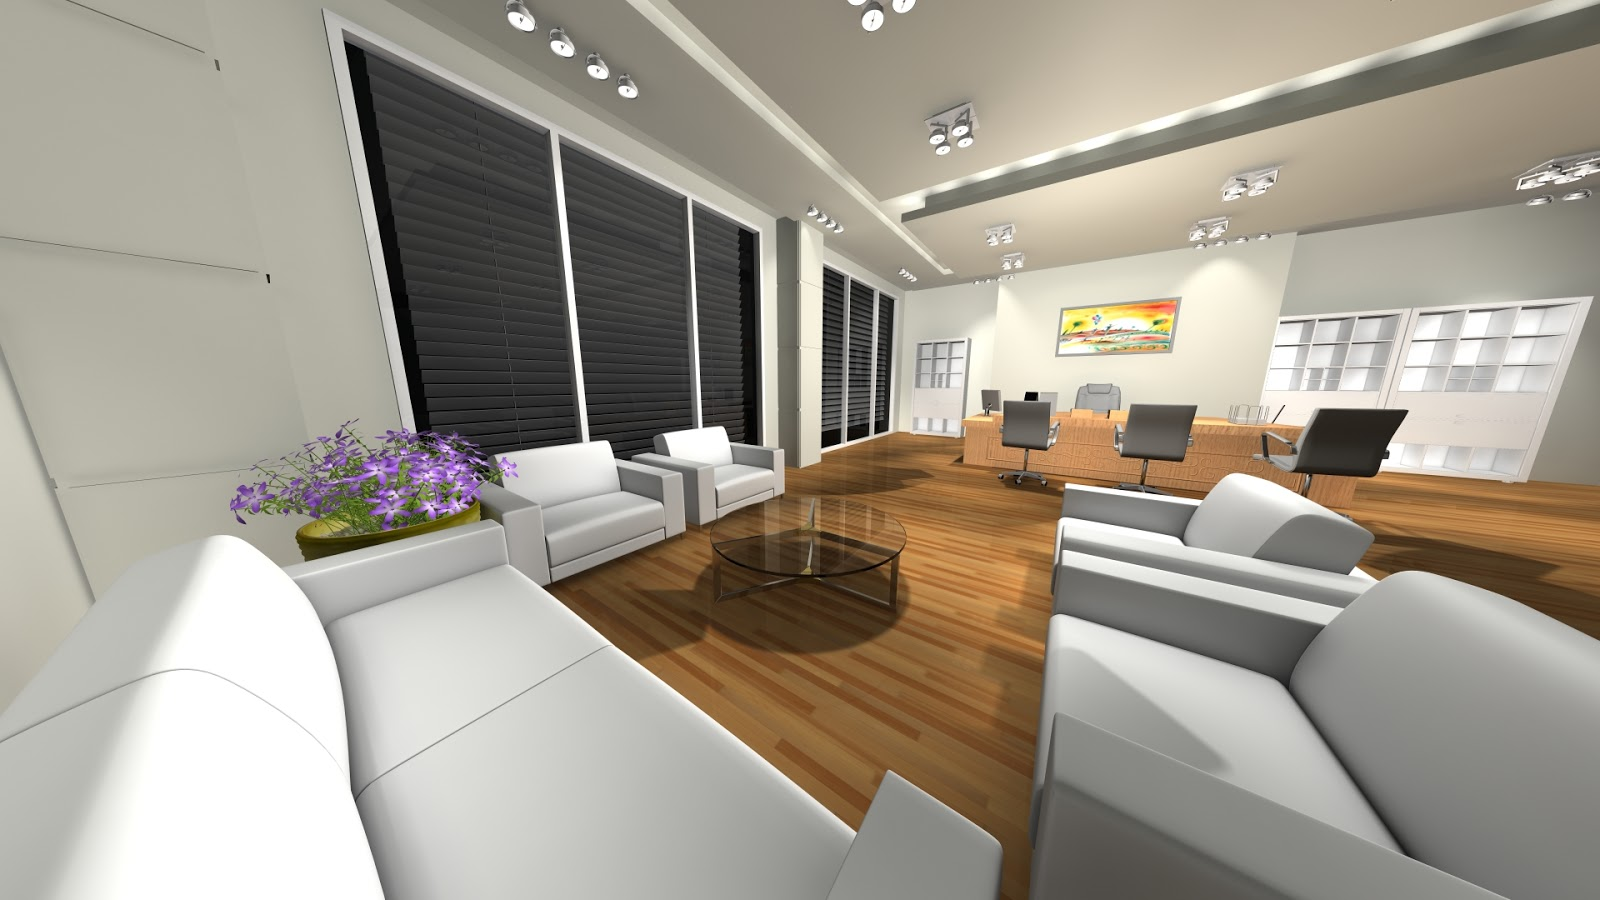 Sajid designer office room 3d interior design 3ds max for Office design 3d